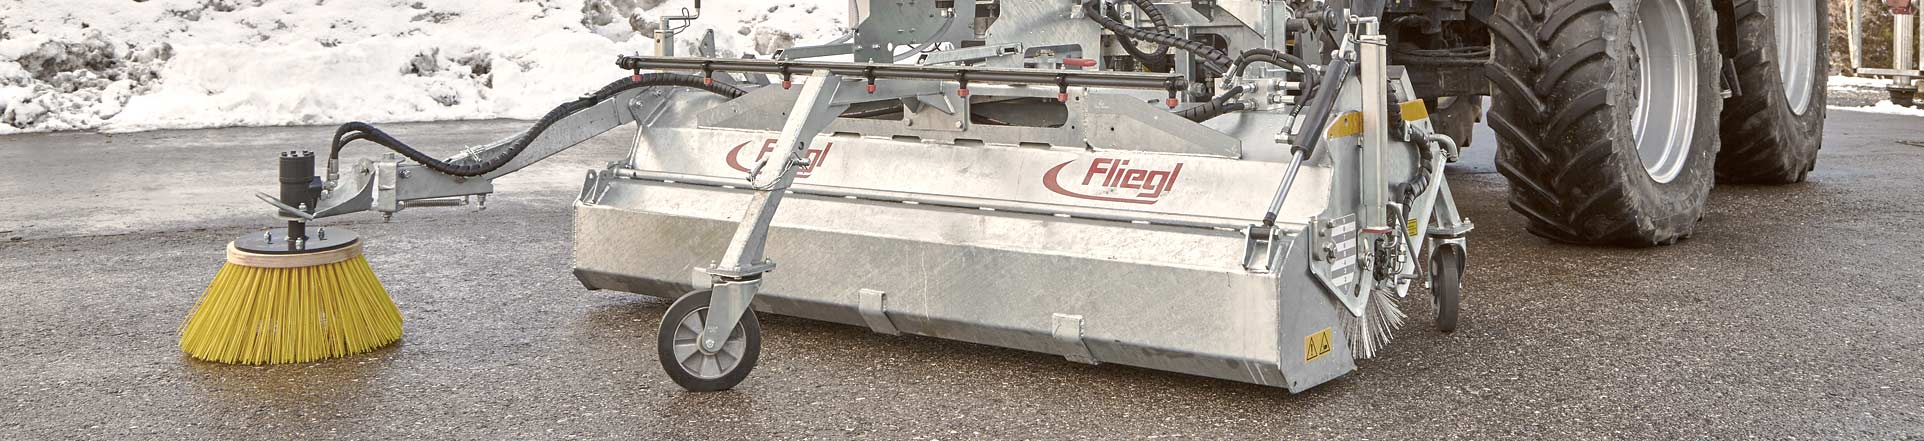 Fliegl sweeper machines